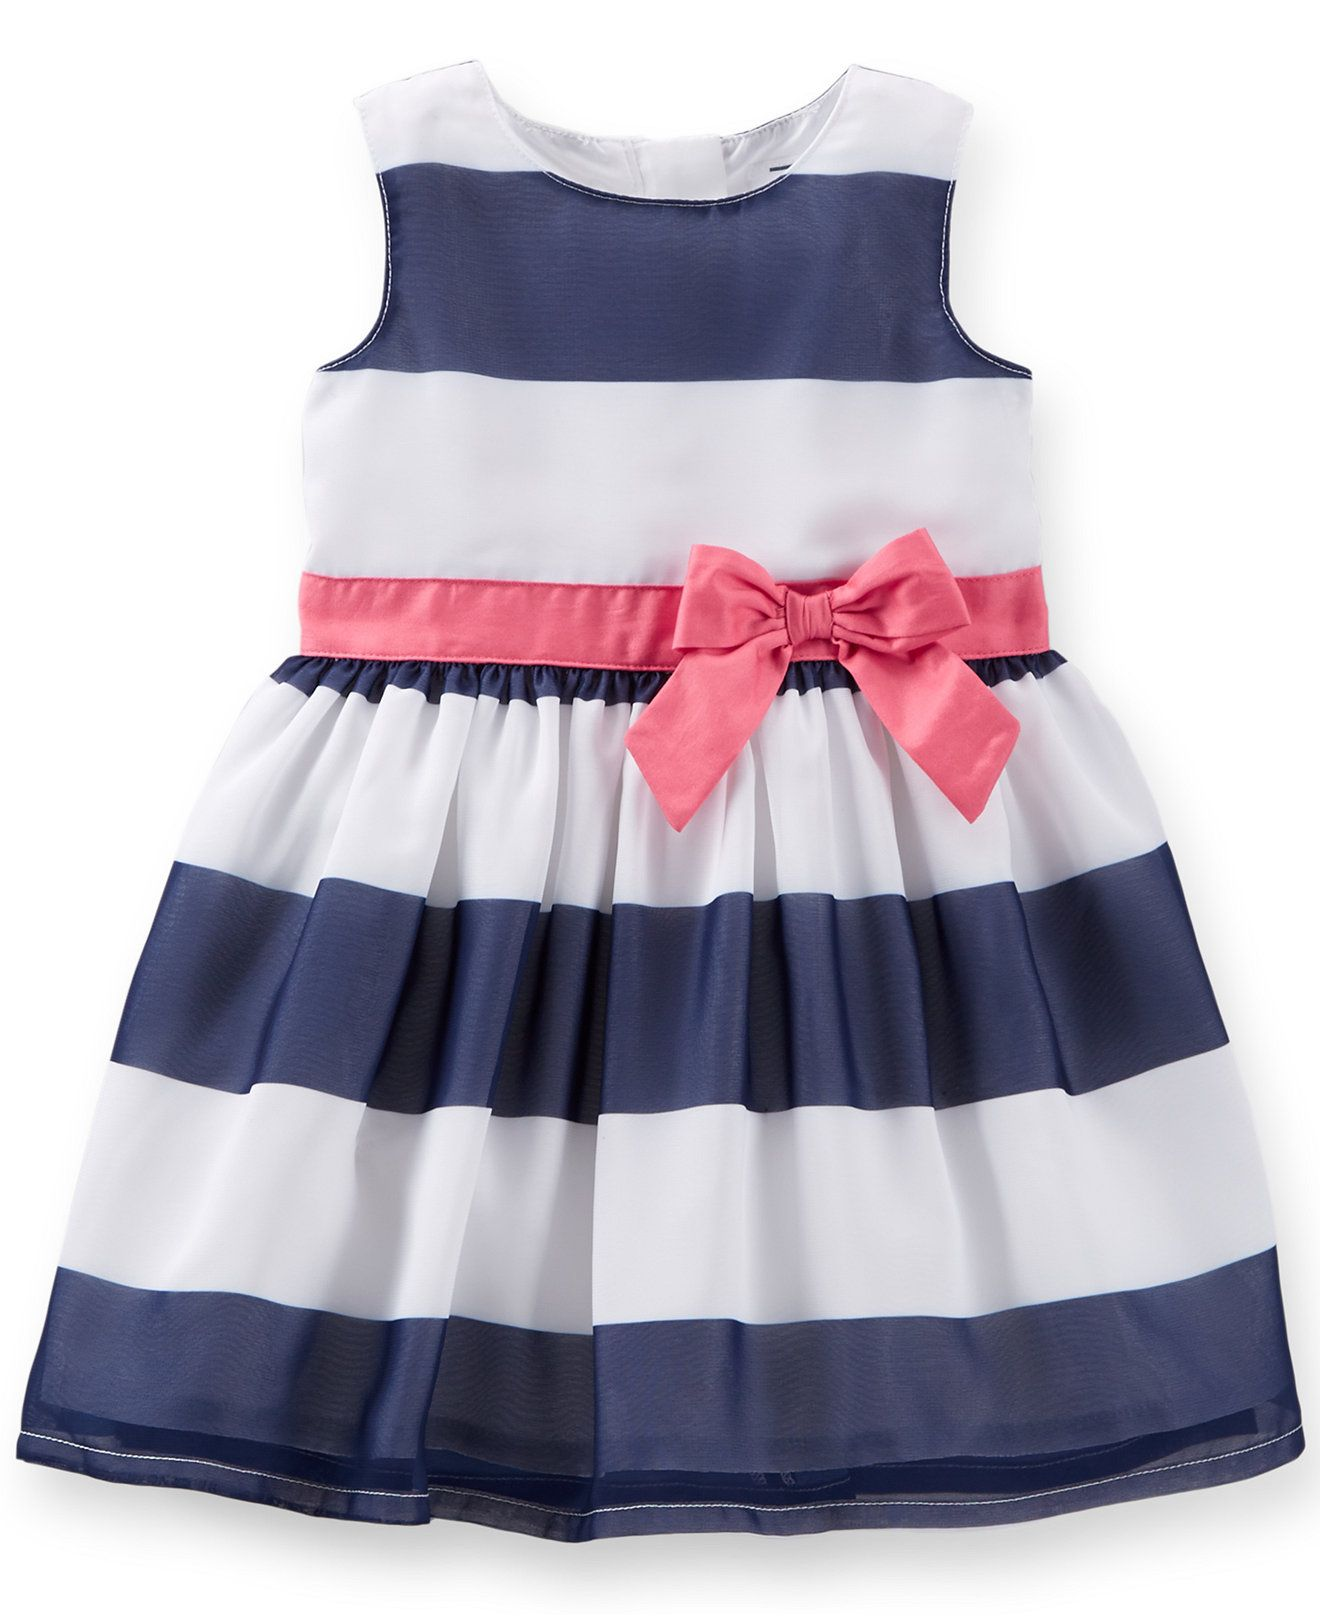 bee805c7fabb  21.99 Carter s Baby Girls  Striped Dress - Kids - Macy s